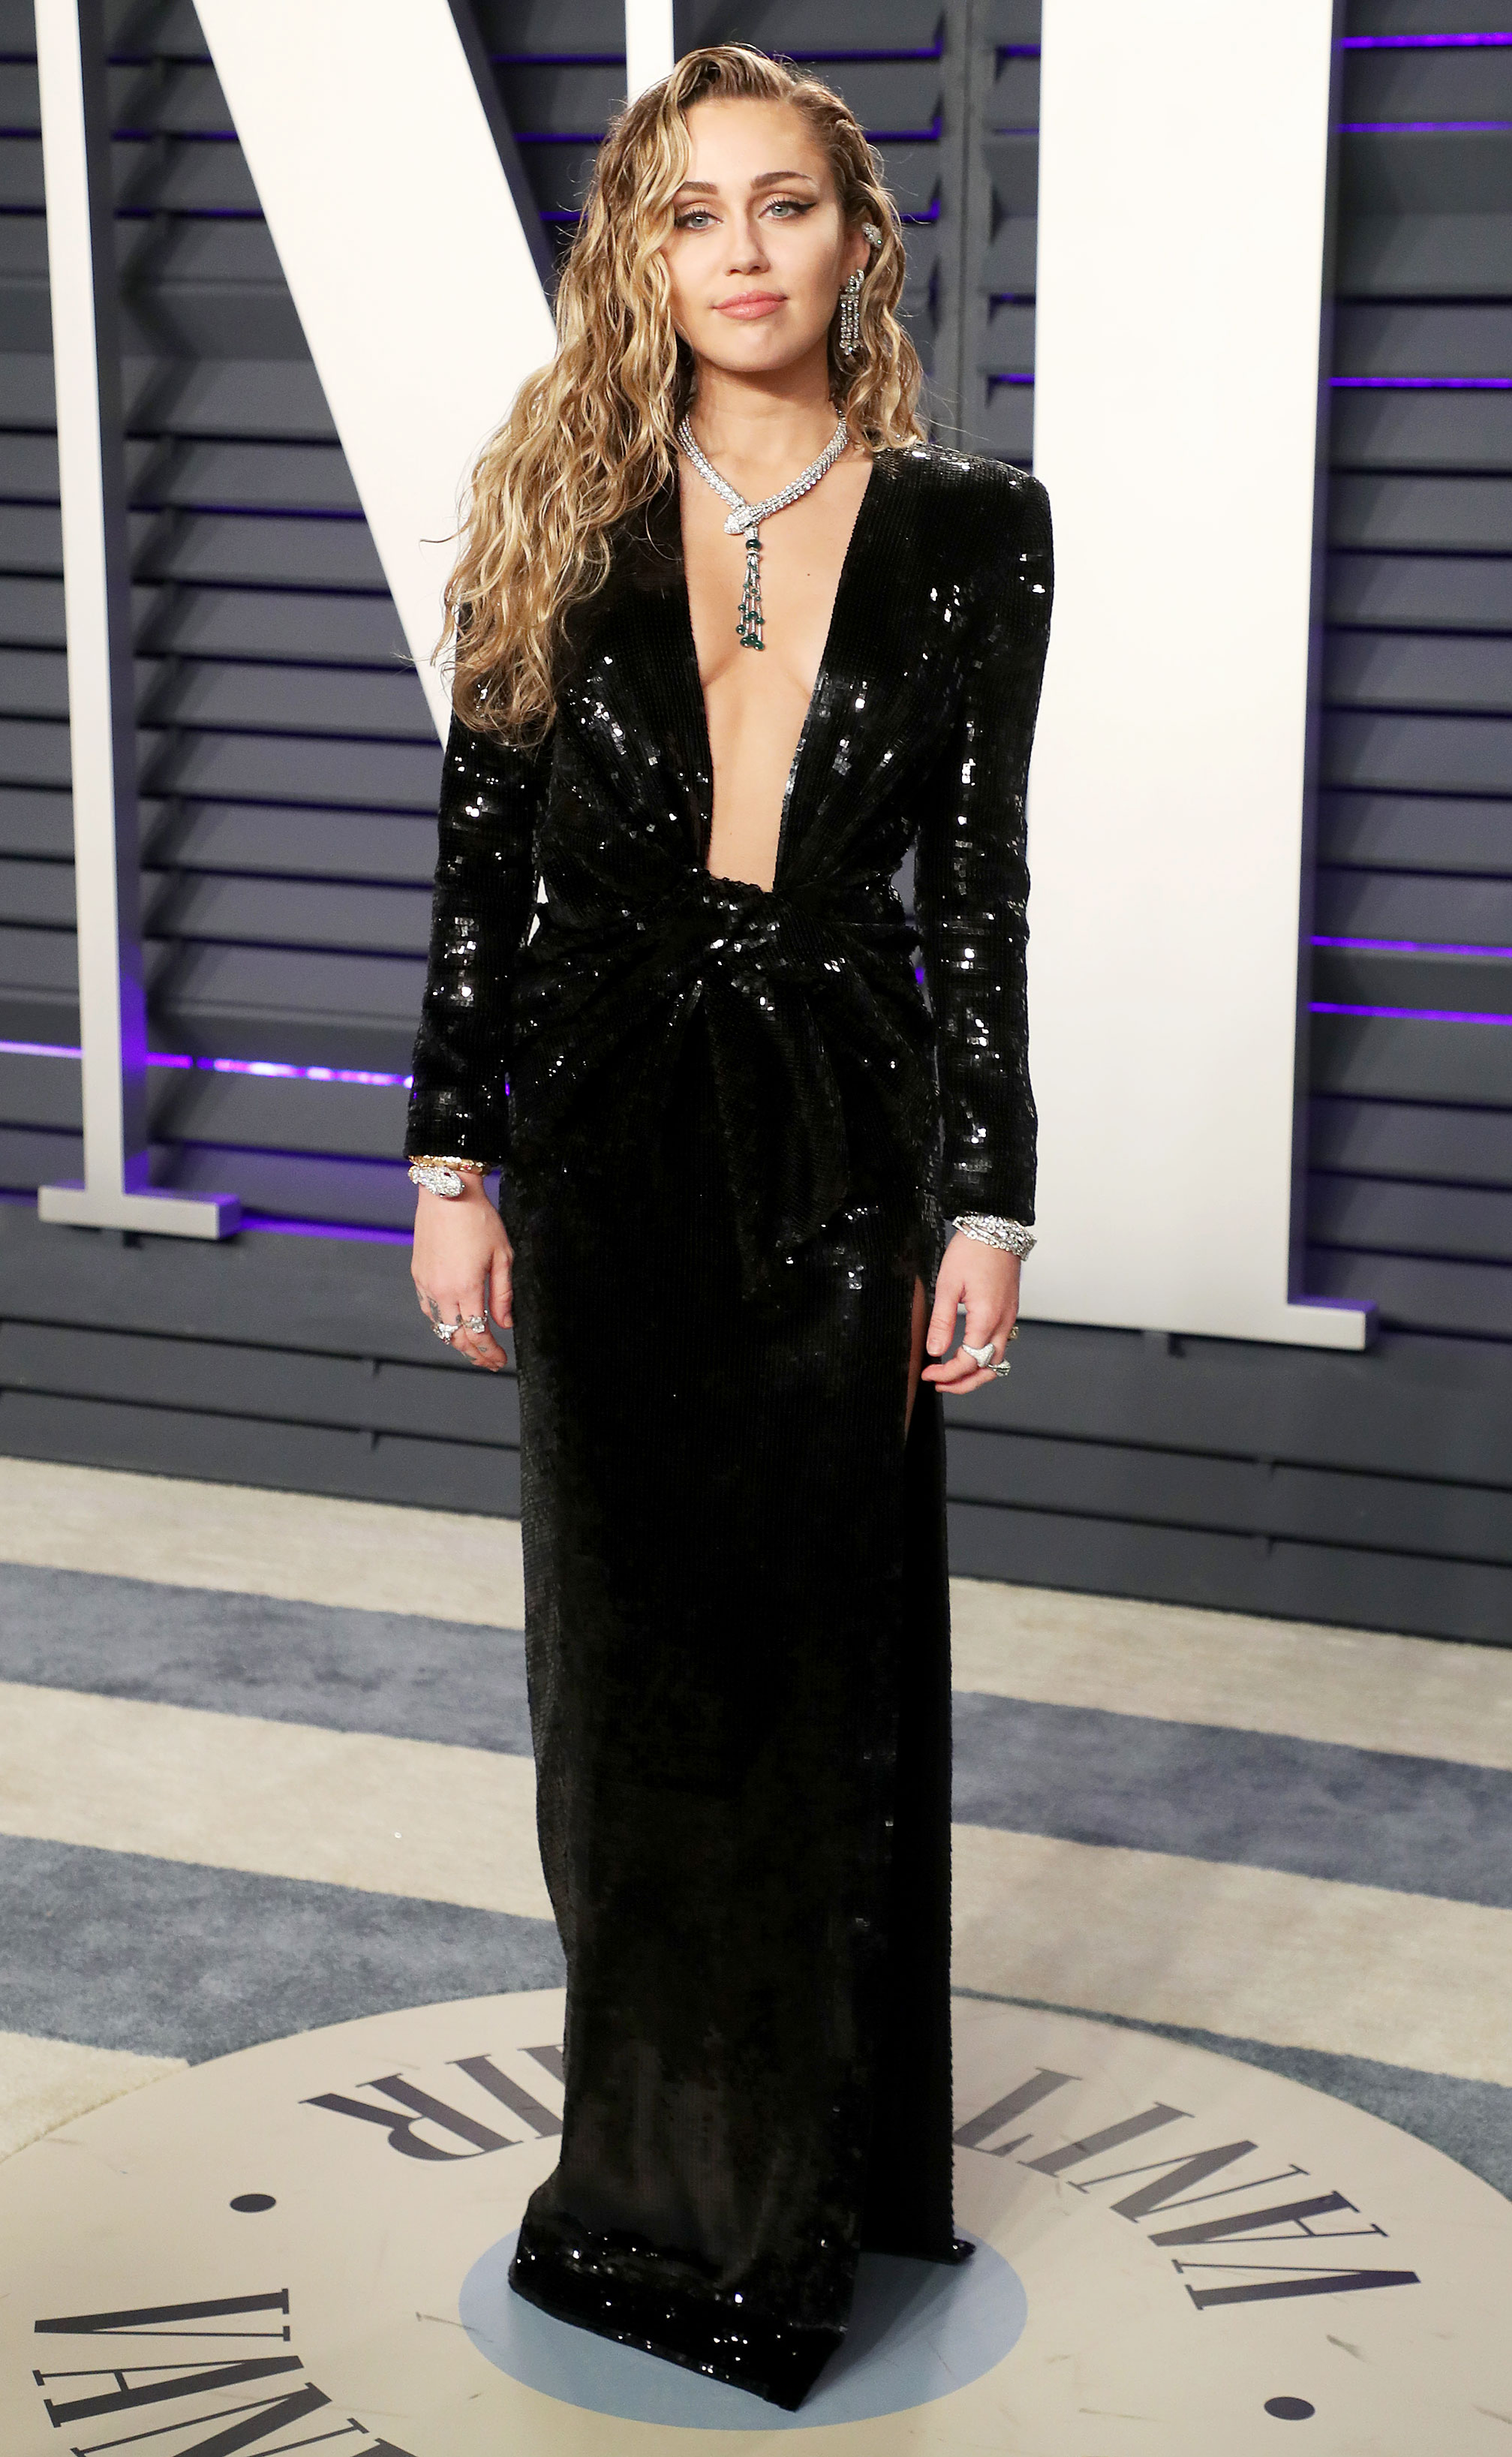 Miley Cyrus All Time Best And Worst Fashion Moments